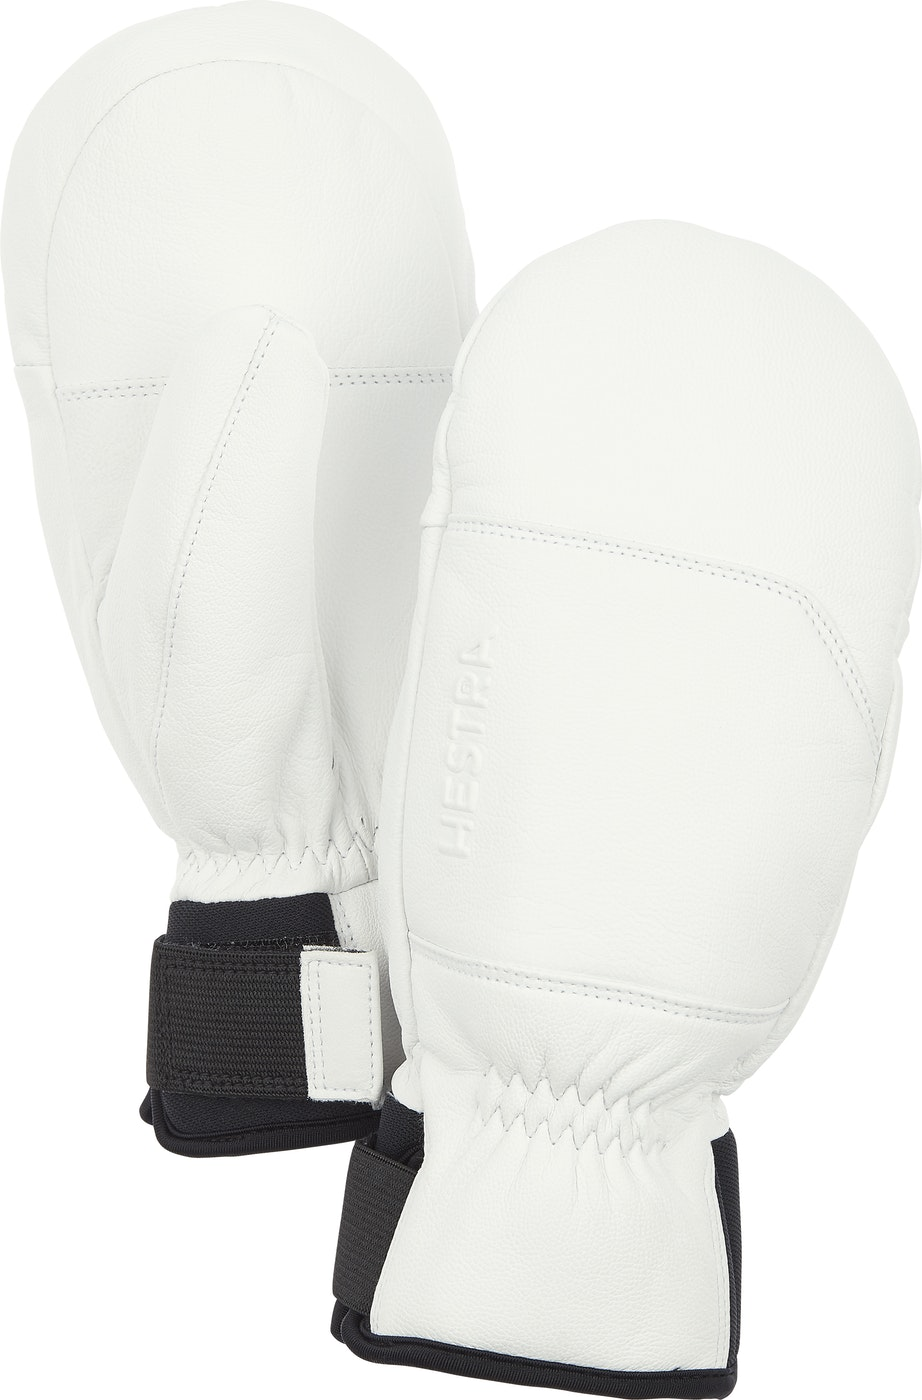 Product image for 30431 Omni - mitt